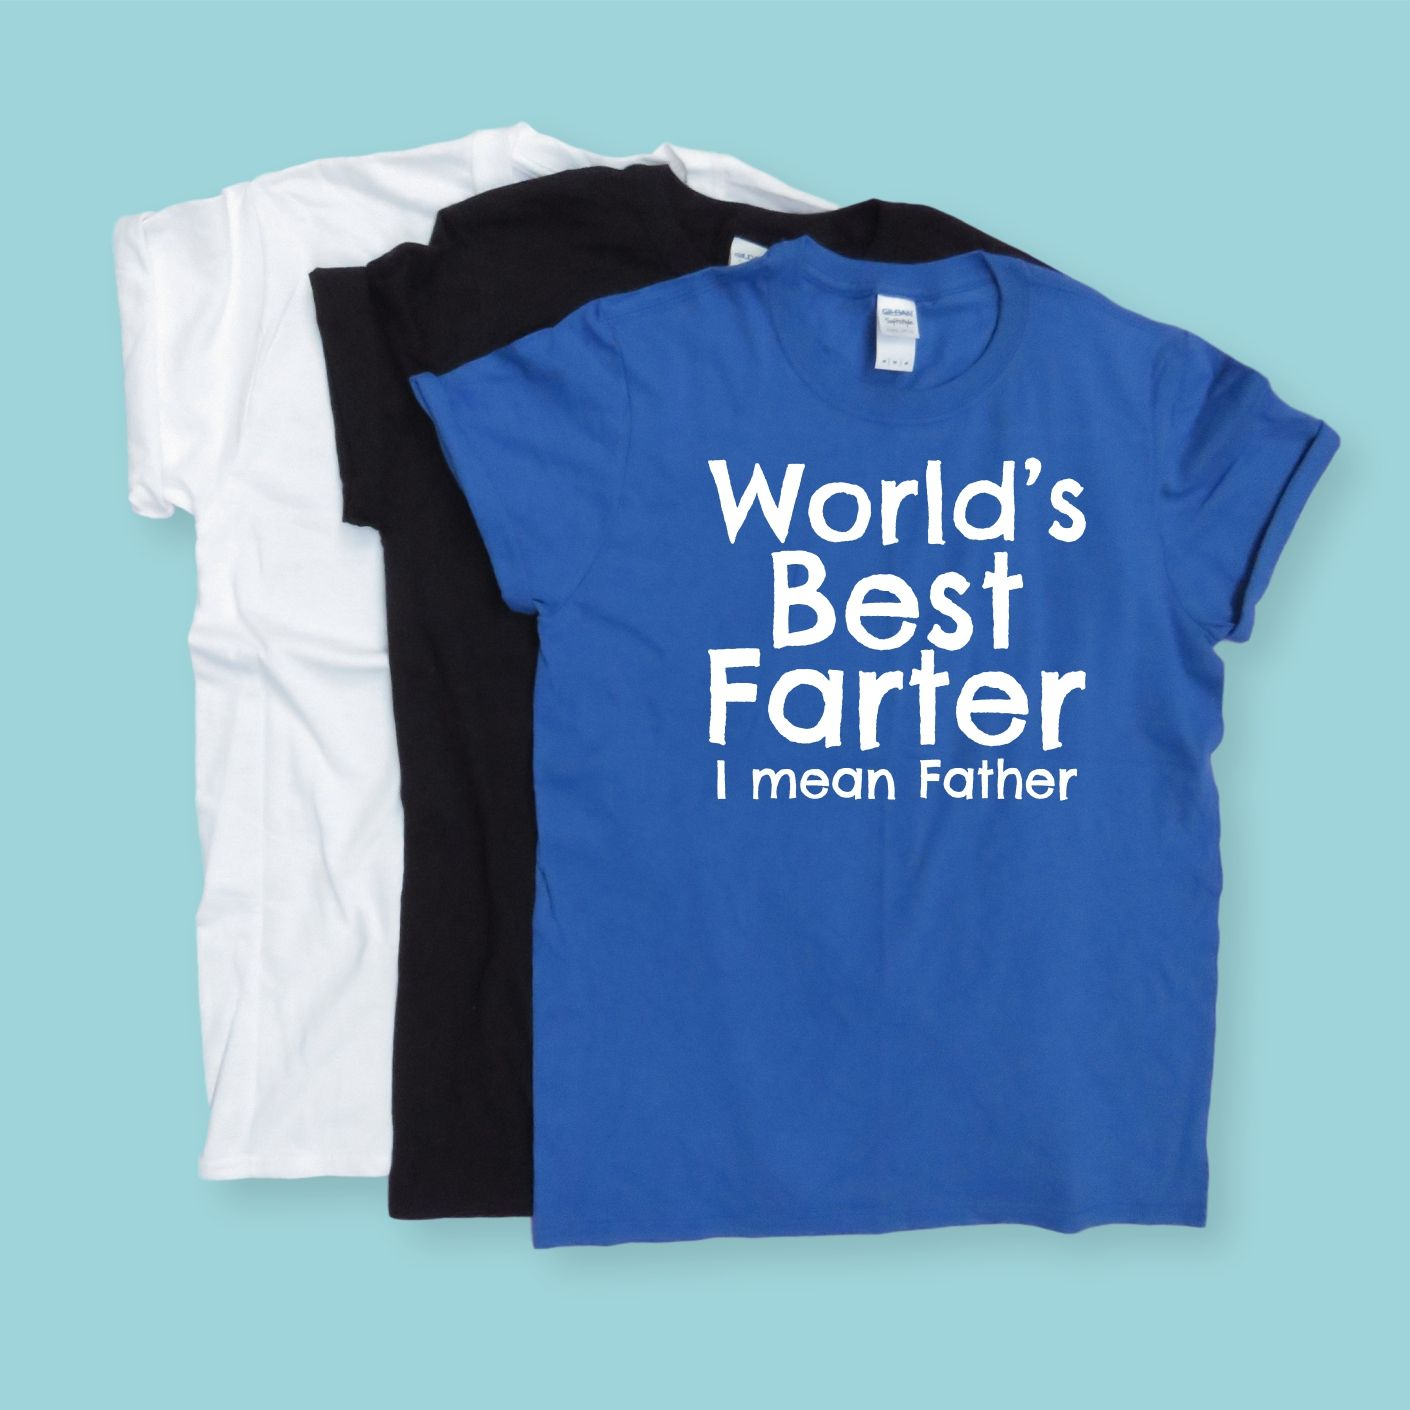 Worlds Best Farter Mean Father Tshirt Fathers Day Gift Dad Top Birthday For